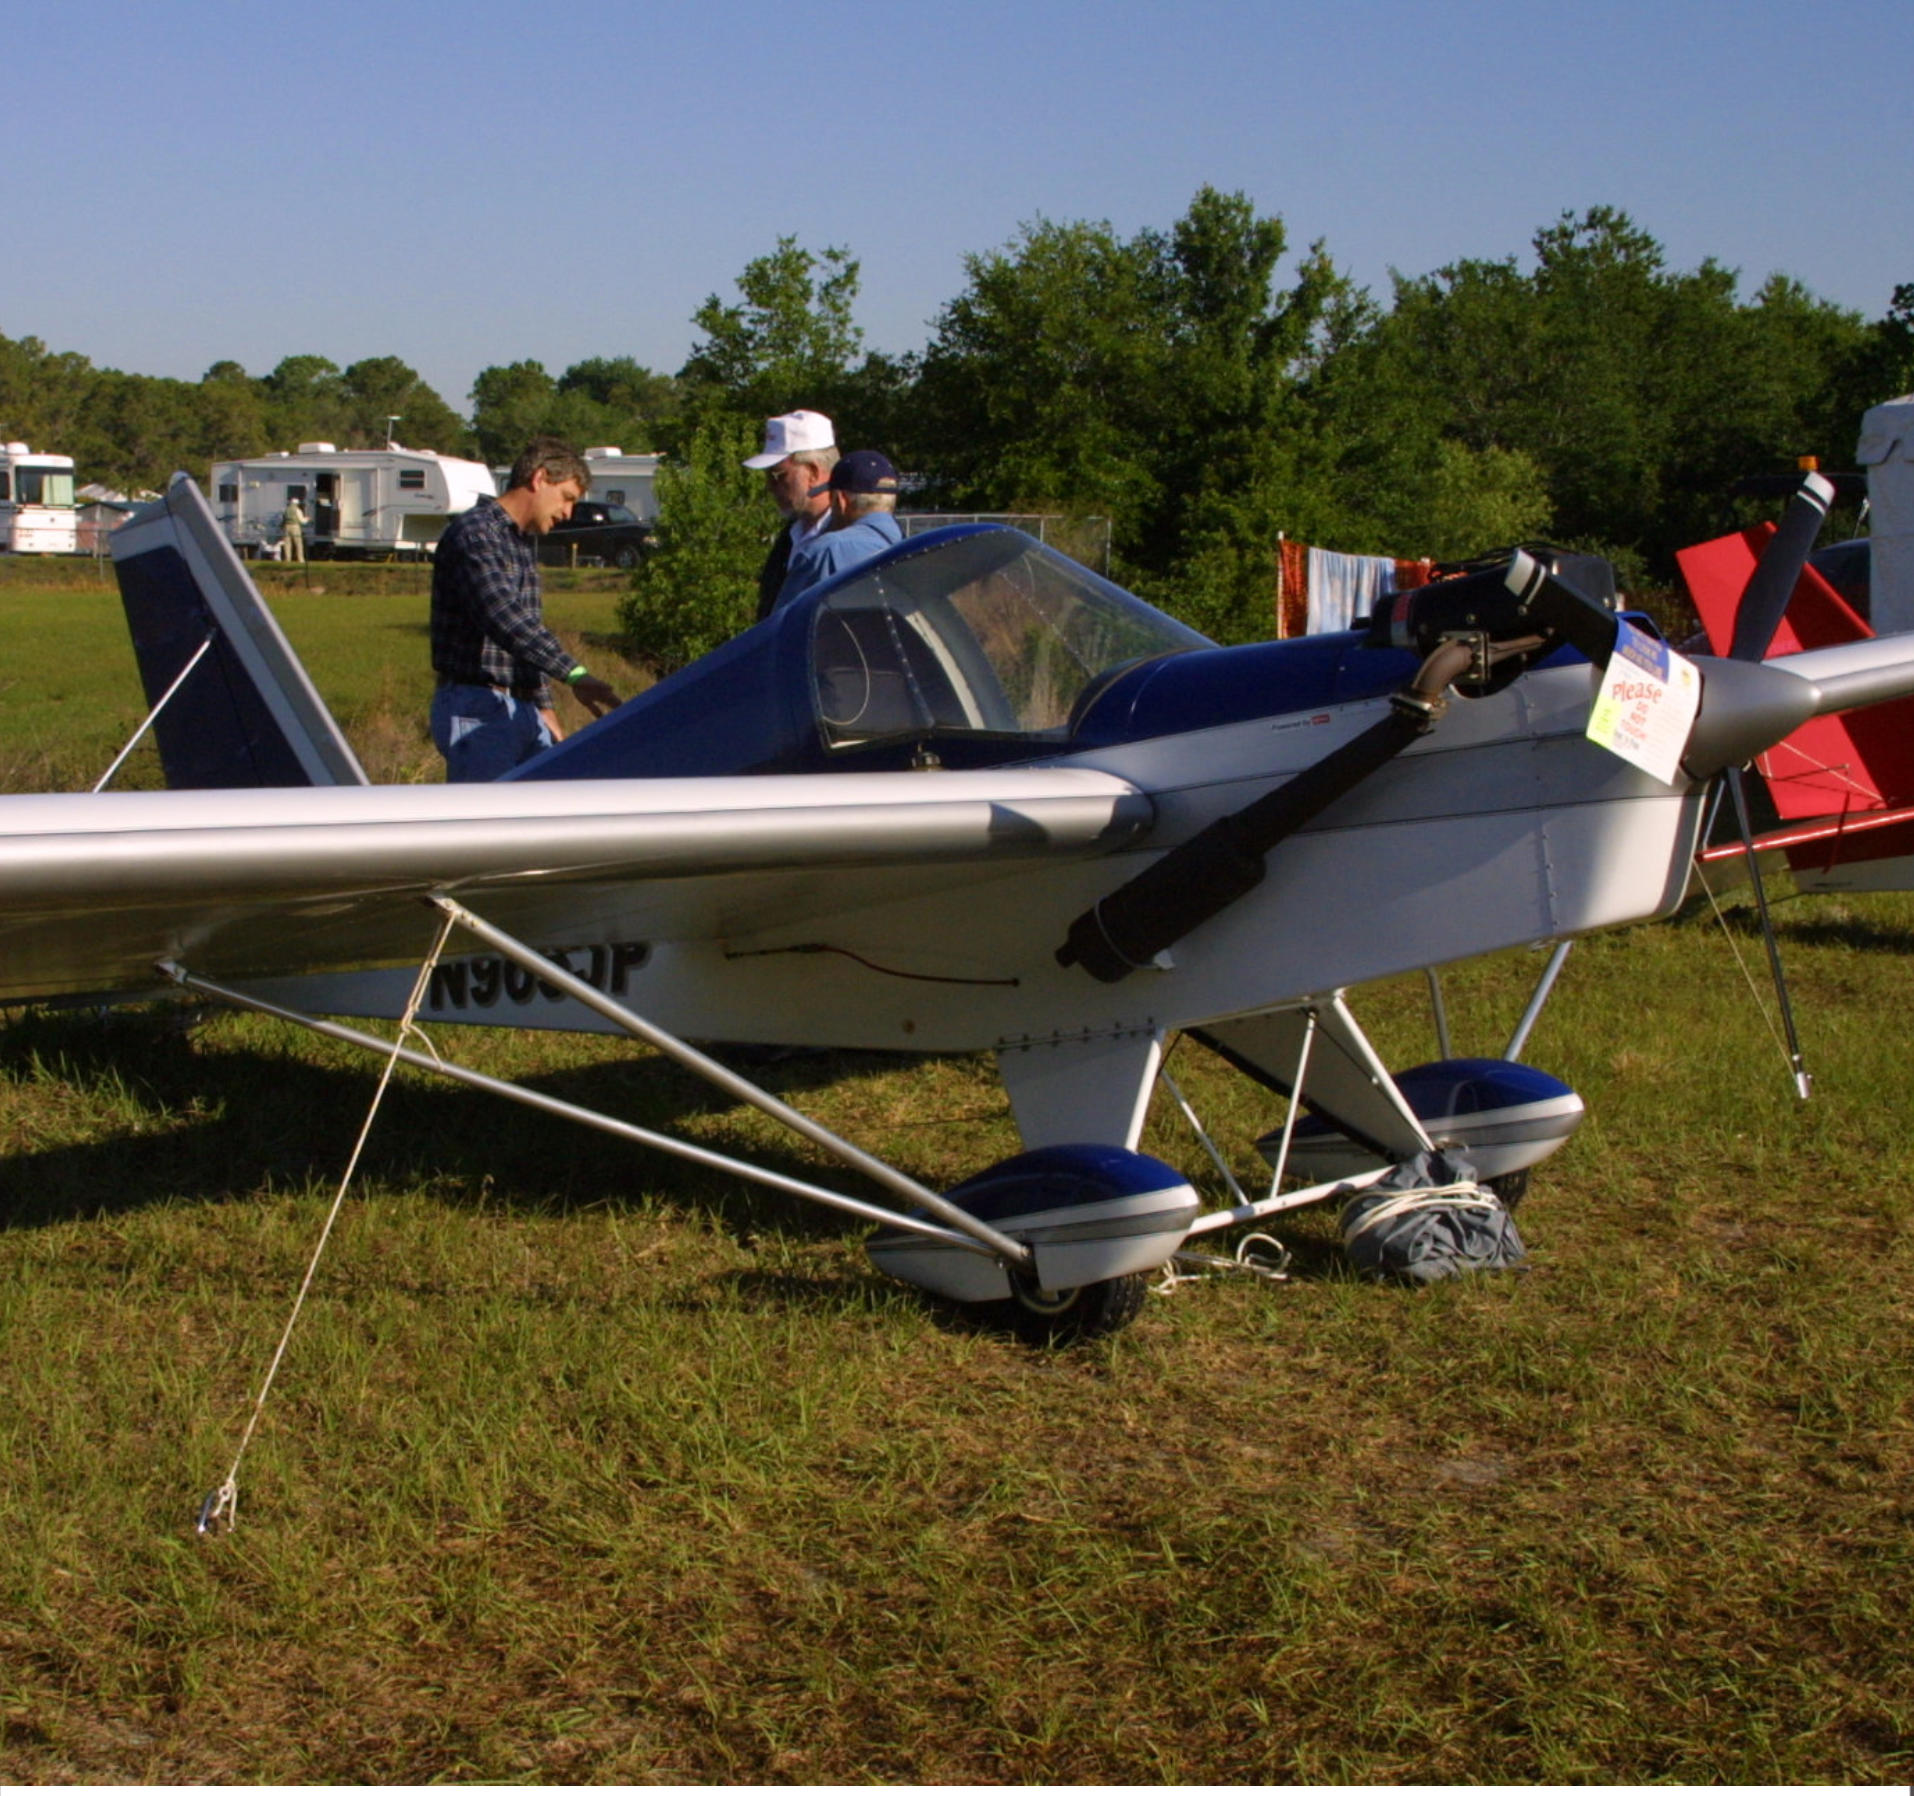 TEAM Mini Max - 12 Ultralight Aircraft that give the biggest bang